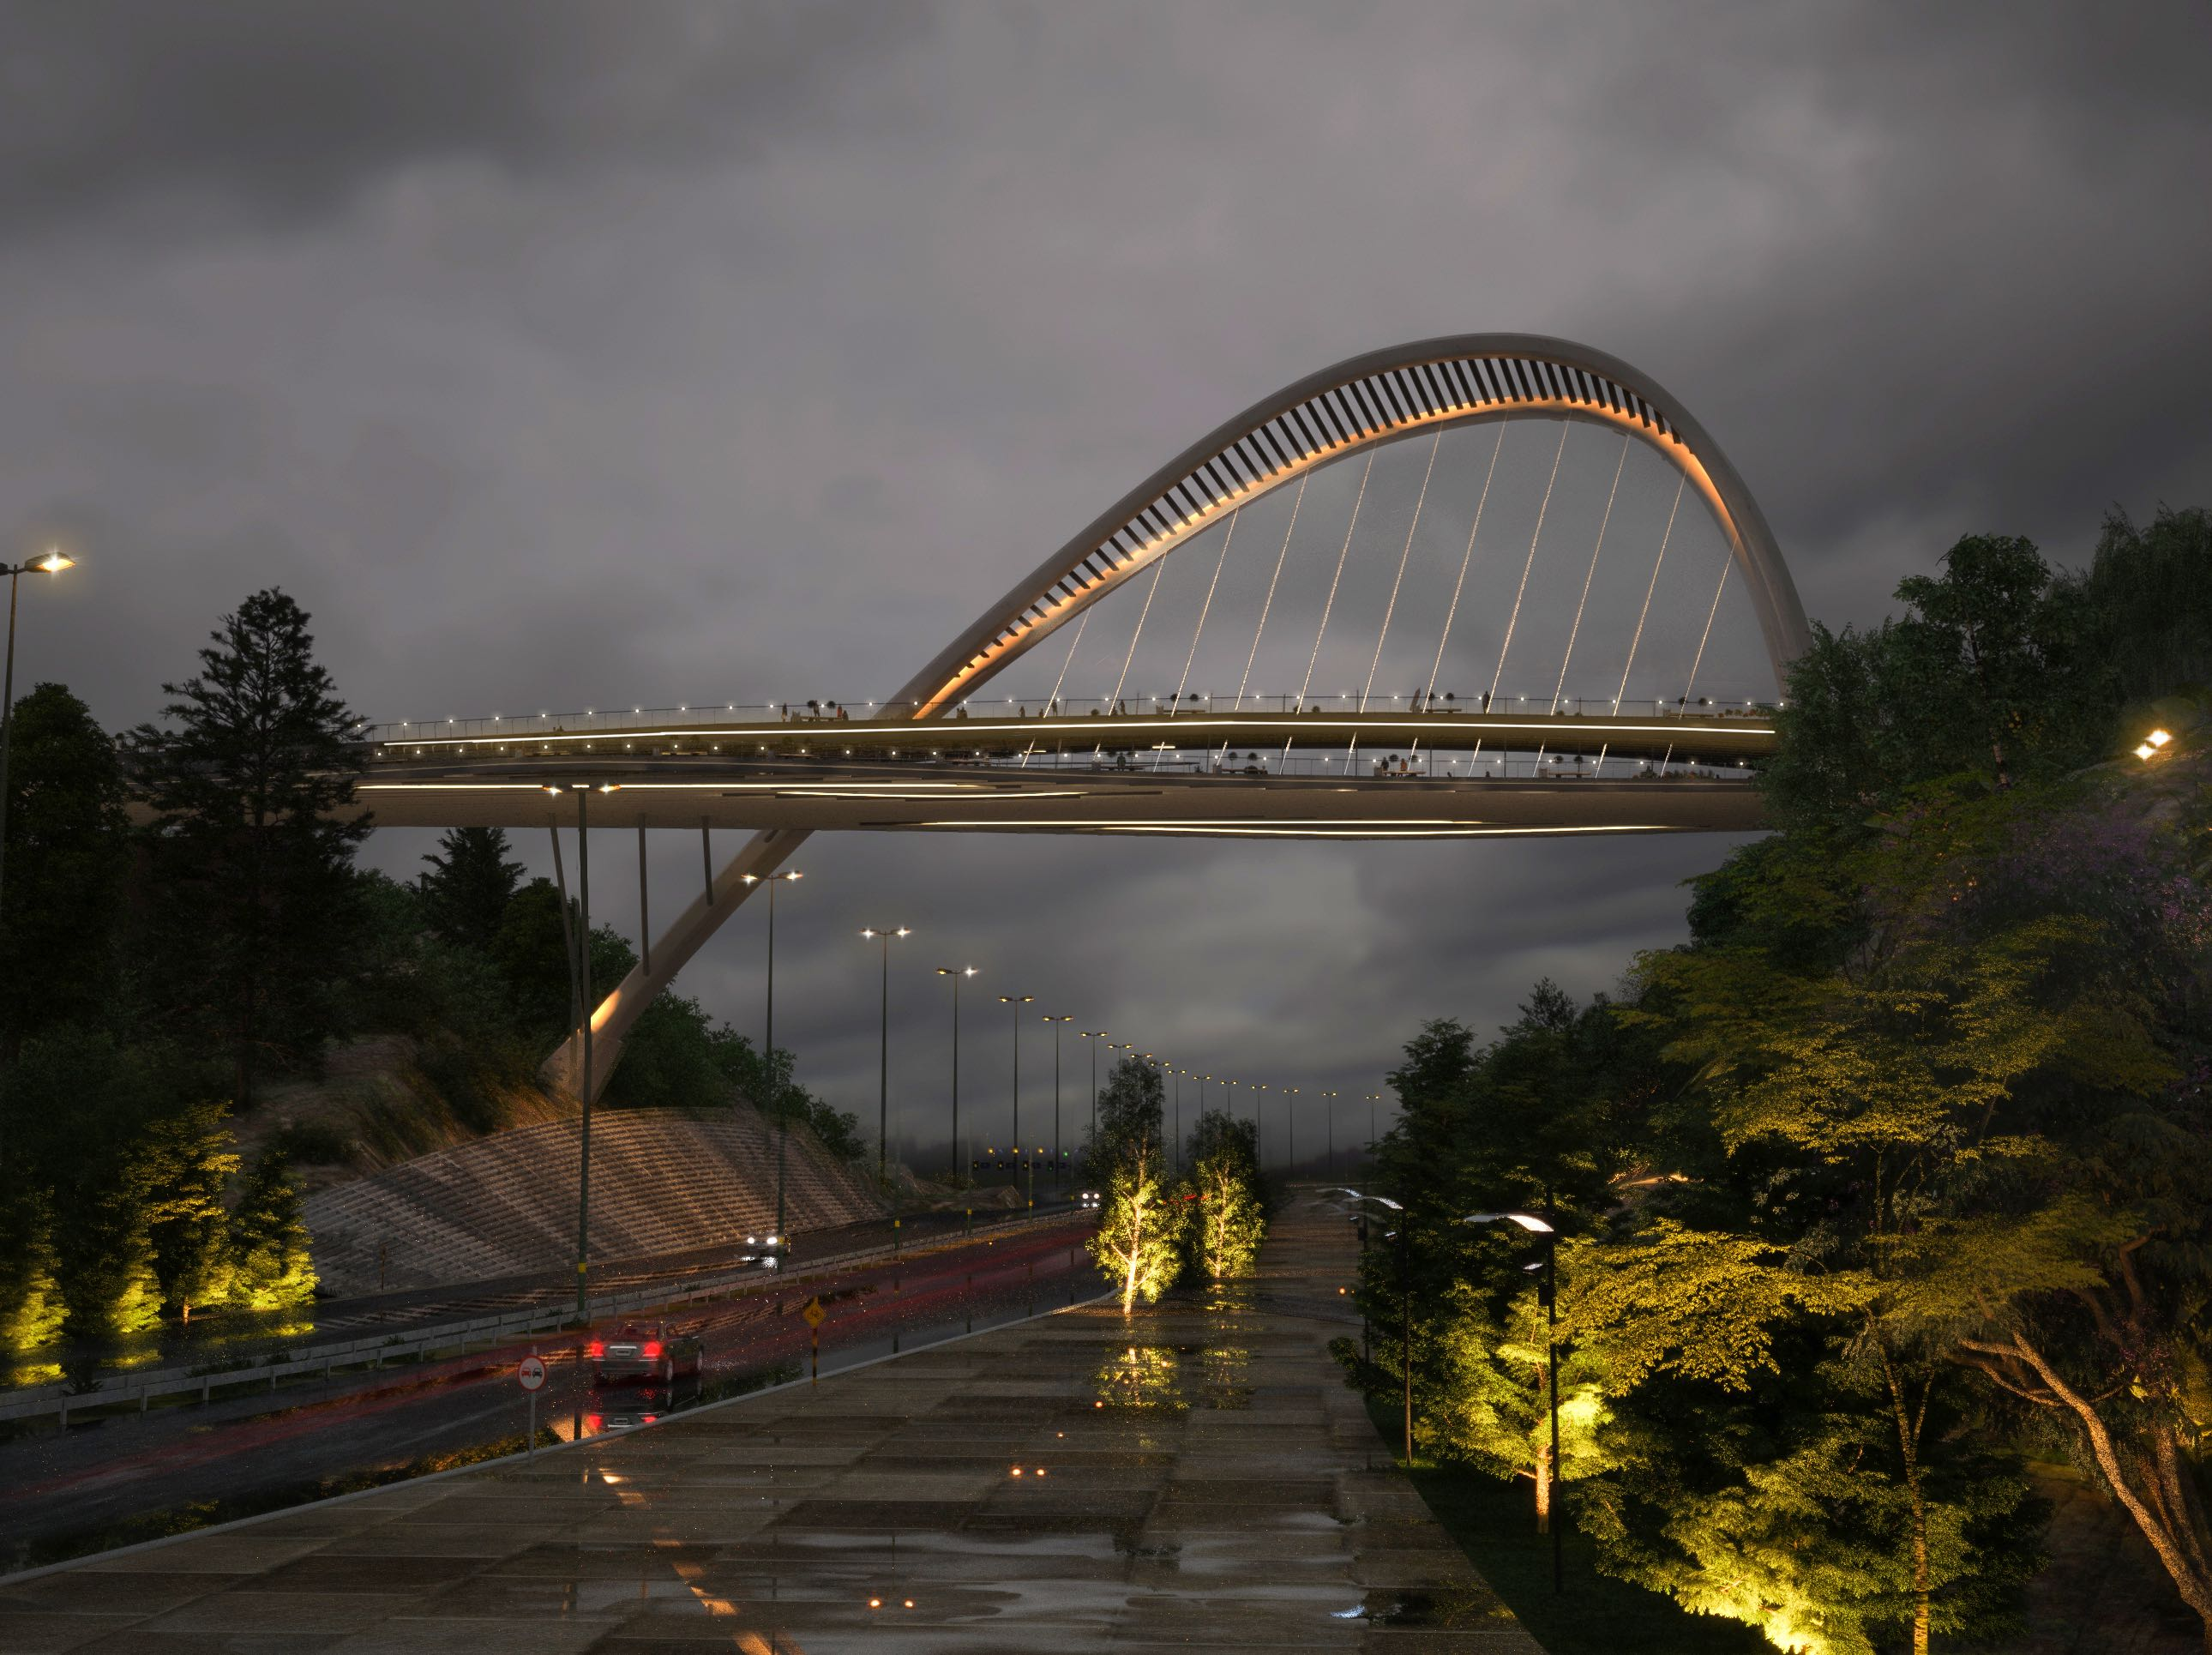 El Goli pedestrian bridge designed by Farho in Iran